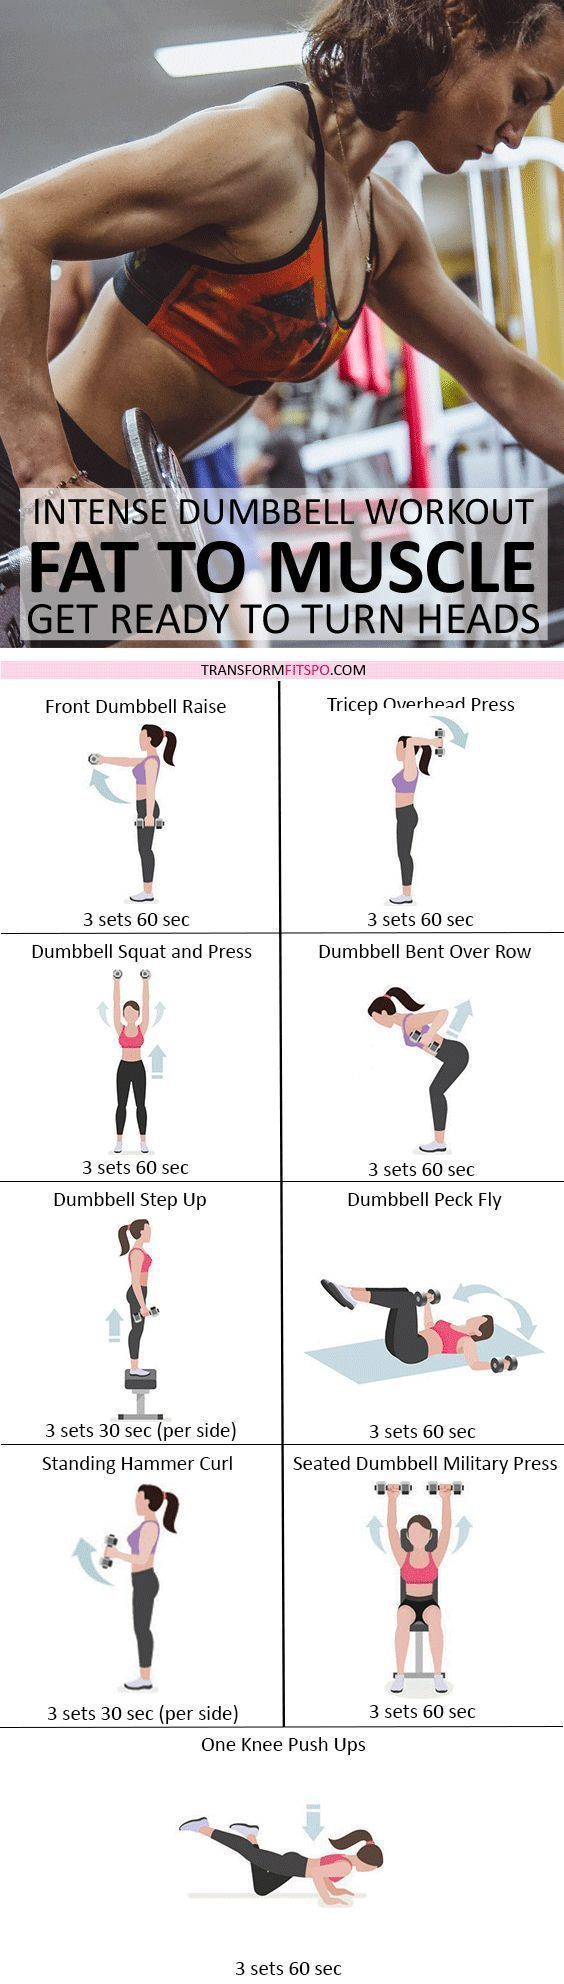 #rapidresults #dumbellforwomen #fattomuscle #womensfitness Turn your fat into mu... #dumbbellworkout